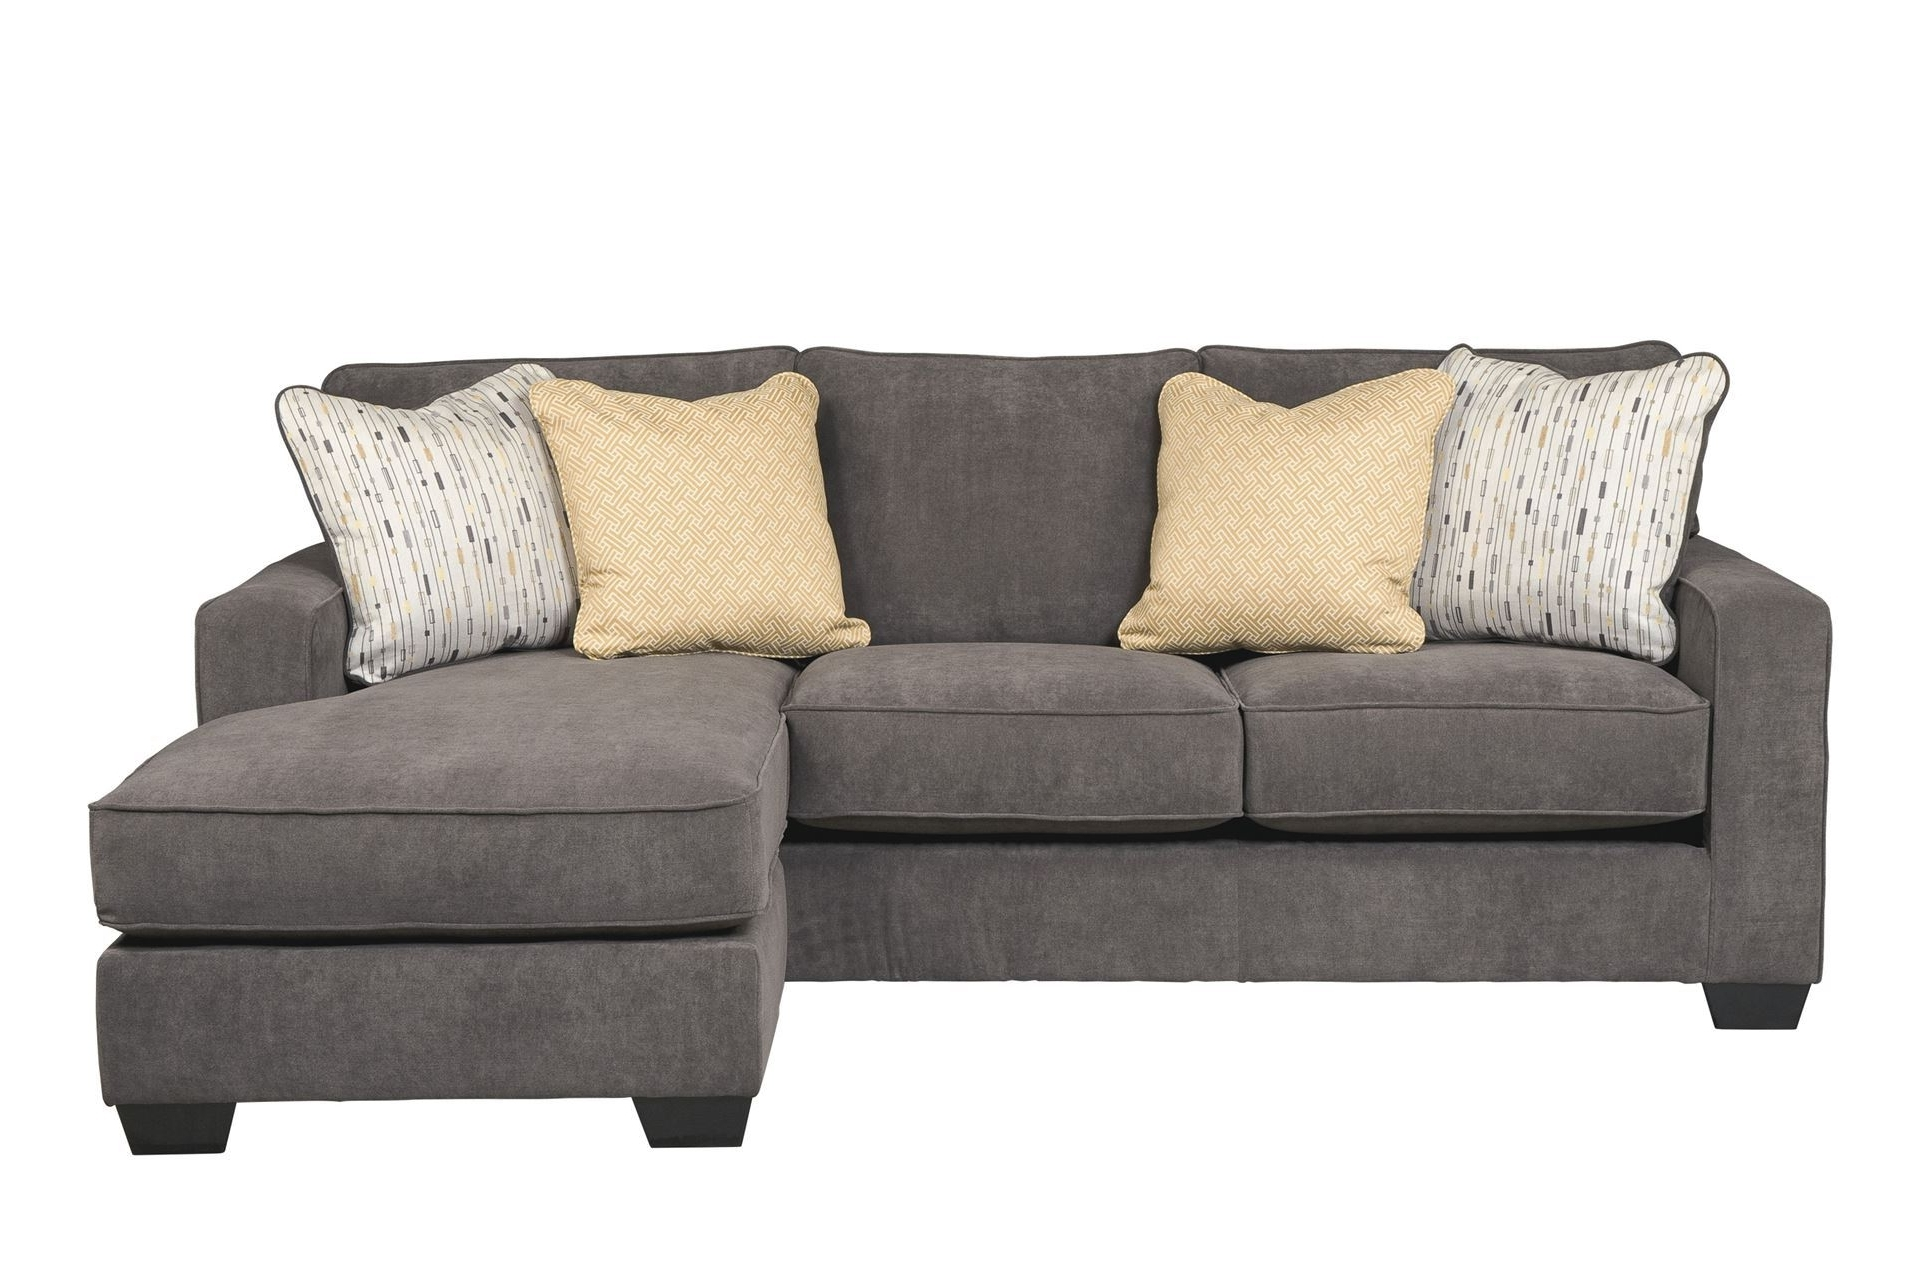 unique sectional sofa covers for living room